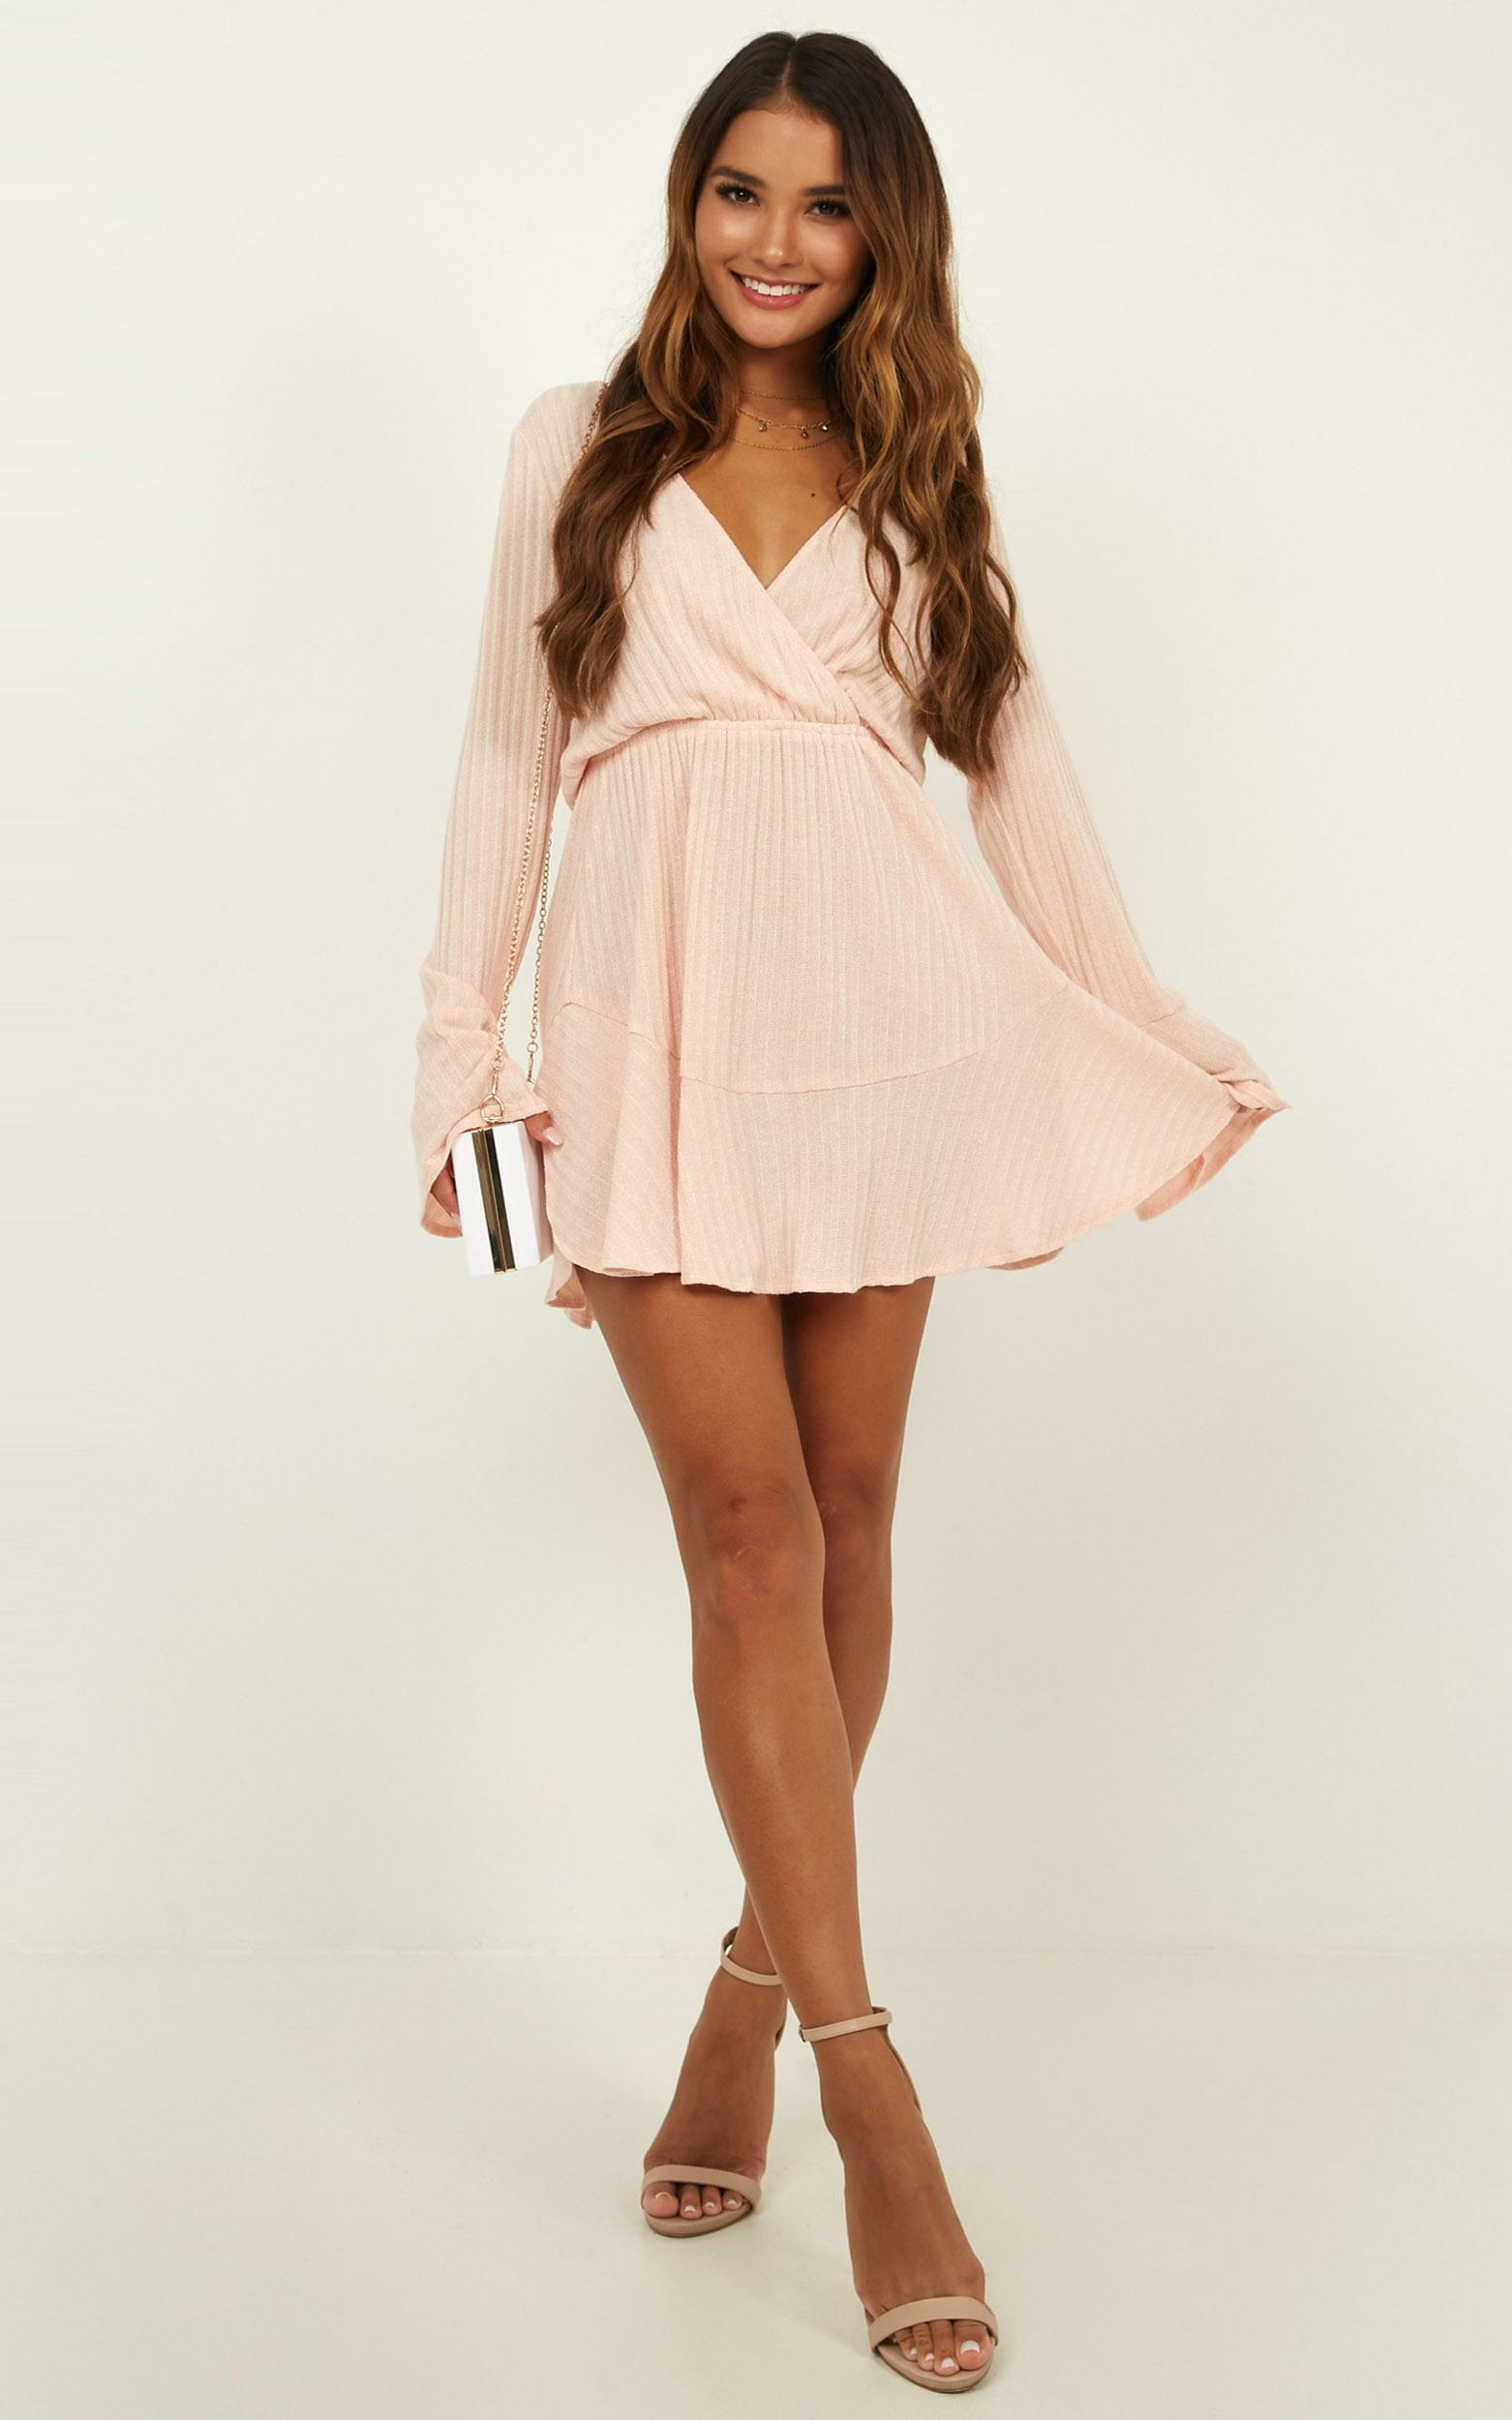 The Next Step Dress In blush marle - 20 (XXXXL), Blush, hi-res image number null